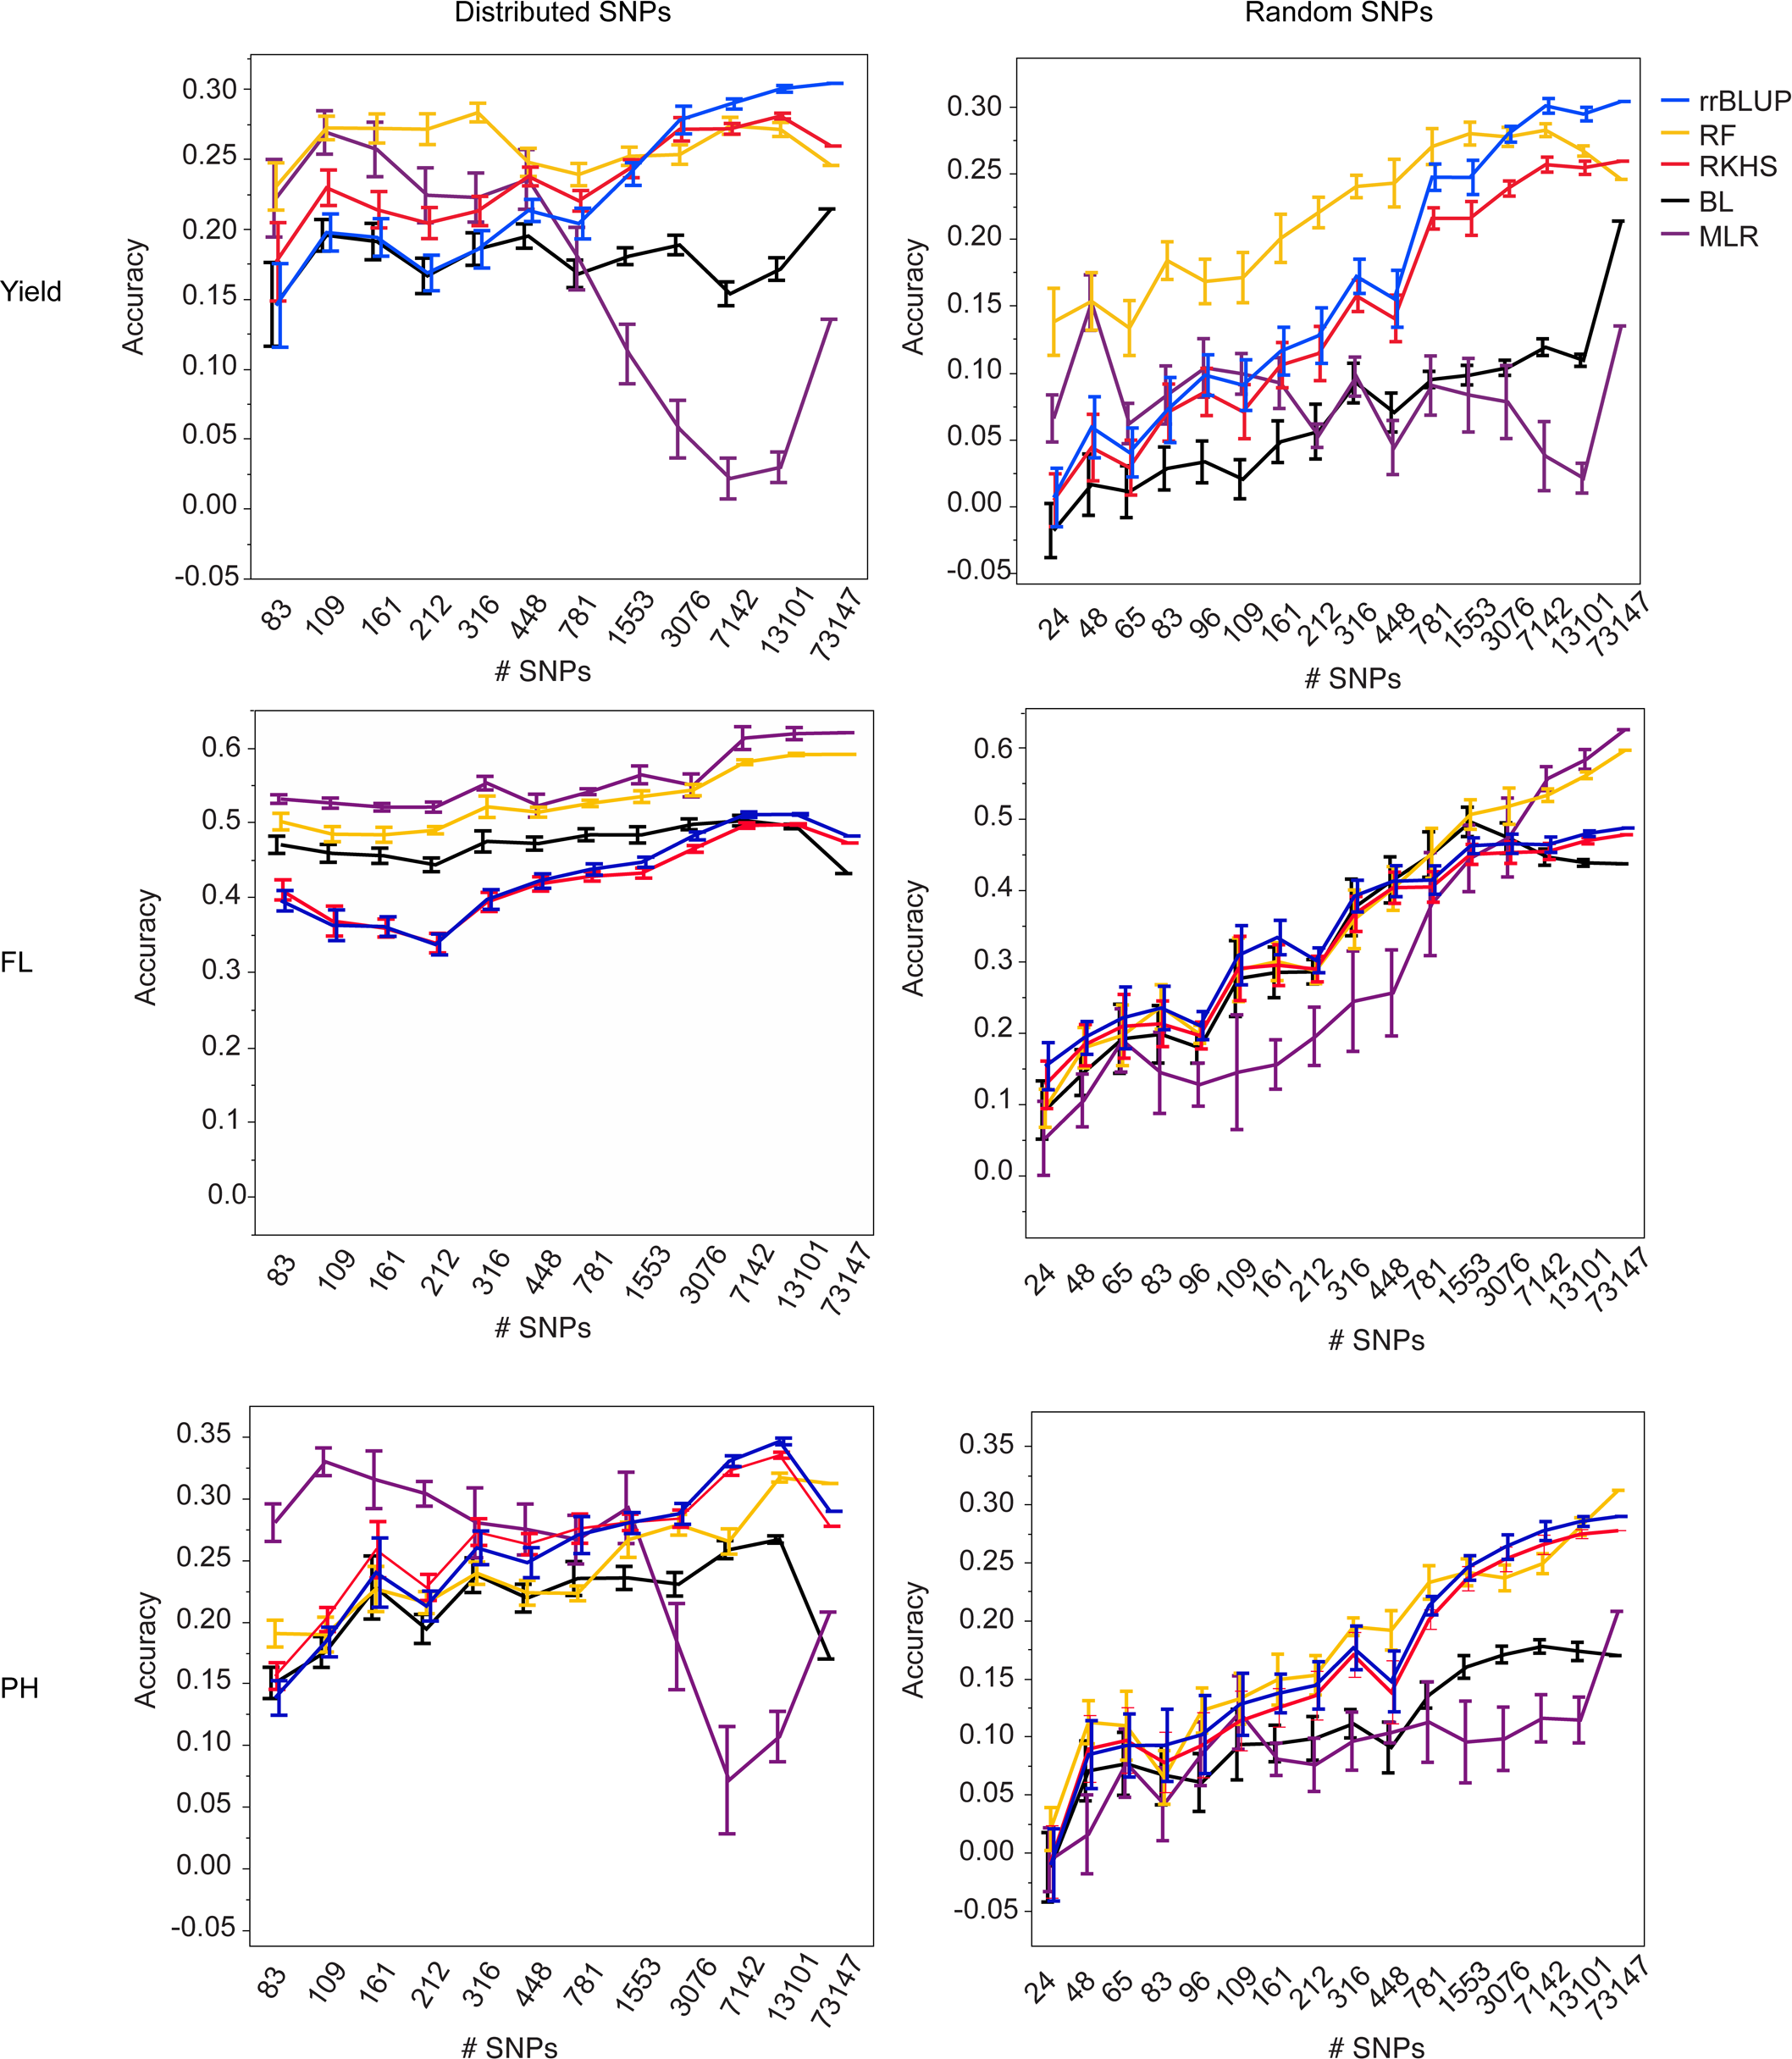 Mean accuracies of cross-validation for prediction of grain yield (Kg/ha) (top row), flowering time (days to 50% flowering) (middle row), and plant height (cm) (bottom row) in the 2012 dry season, using 10 selections of SNP subsets either distributed evenly throughout the genome (right column) or chosen at random (left column) and five different statistical methods, error bars constructed using 1 standard error from the mean.